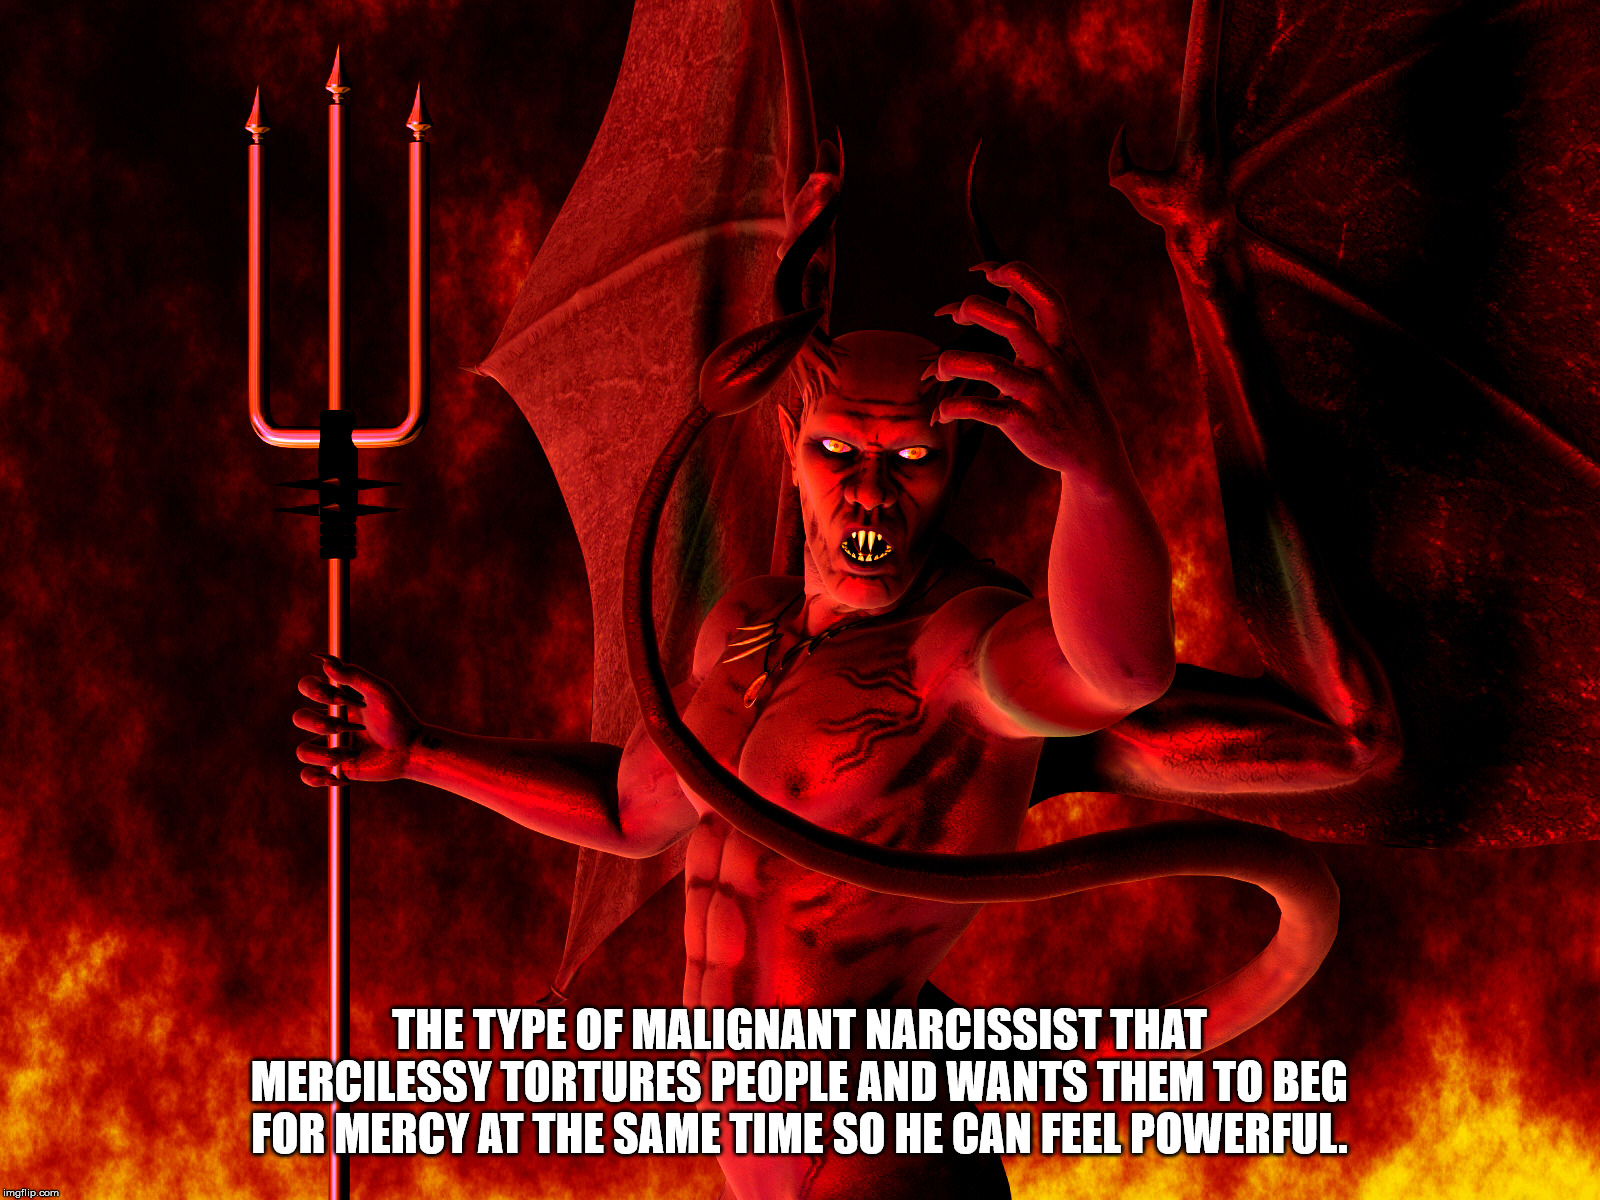 Satan | THE TYPE OF MALIGNANT NARCISSIST THAT MERCILESSY TORTURES PEOPLE AND WANTS THEM TO BEG FOR MERCY AT THE SAME TIME SO HE CAN FEEL POWERFUL. | image tagged in satan,the devil,lucifer,malignant narcissist,sicko,madman | made w/ Imgflip meme maker